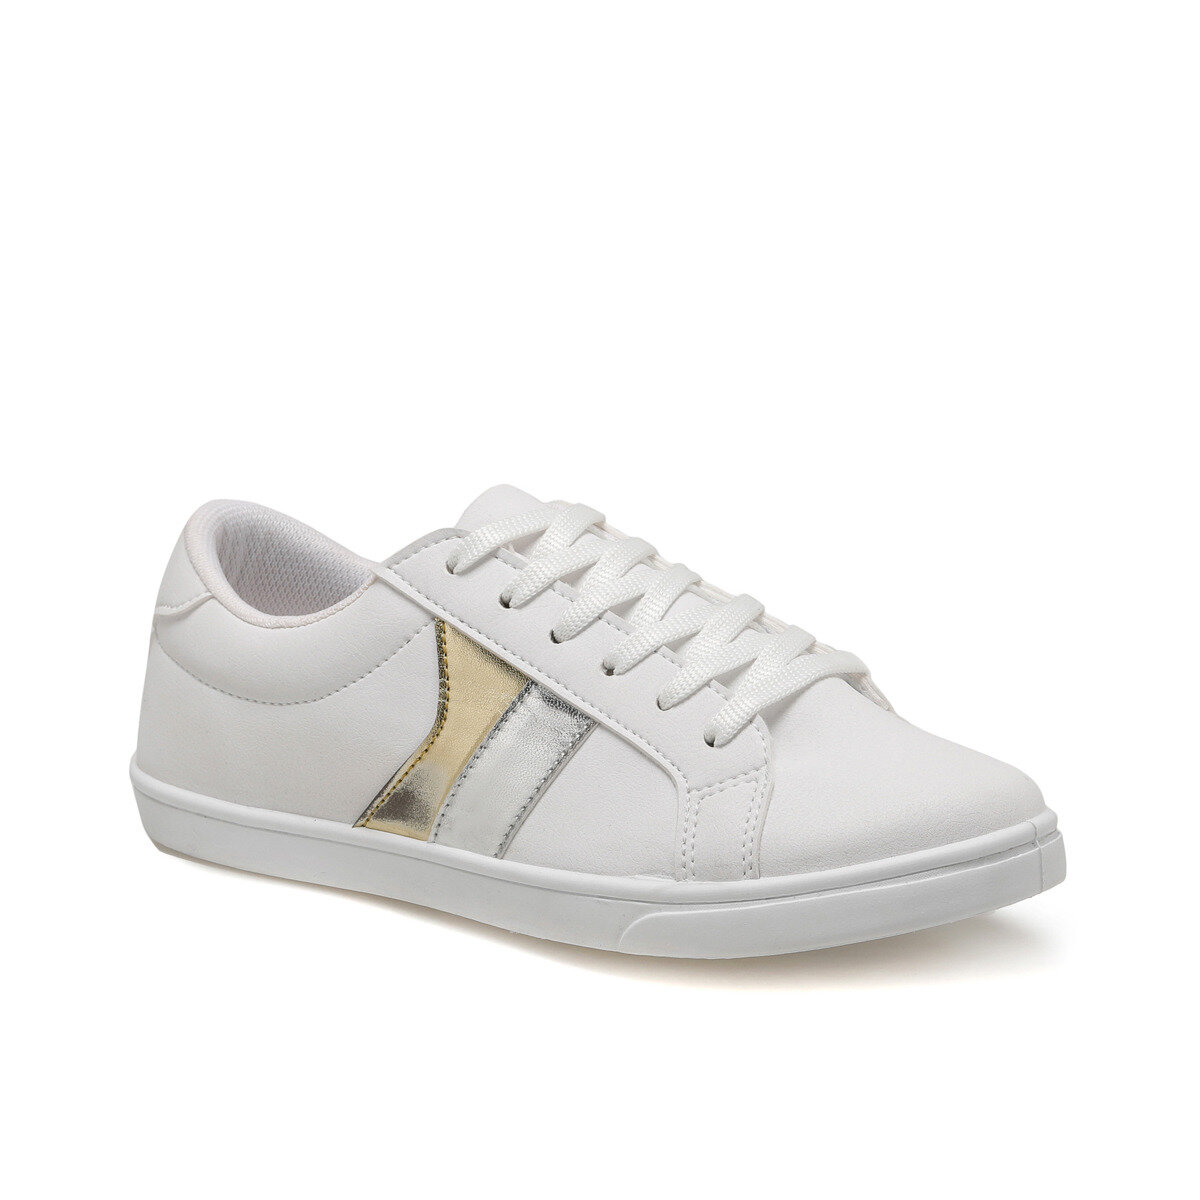 FLO CS20028 White Women Basic Casual Shoes Art Bella